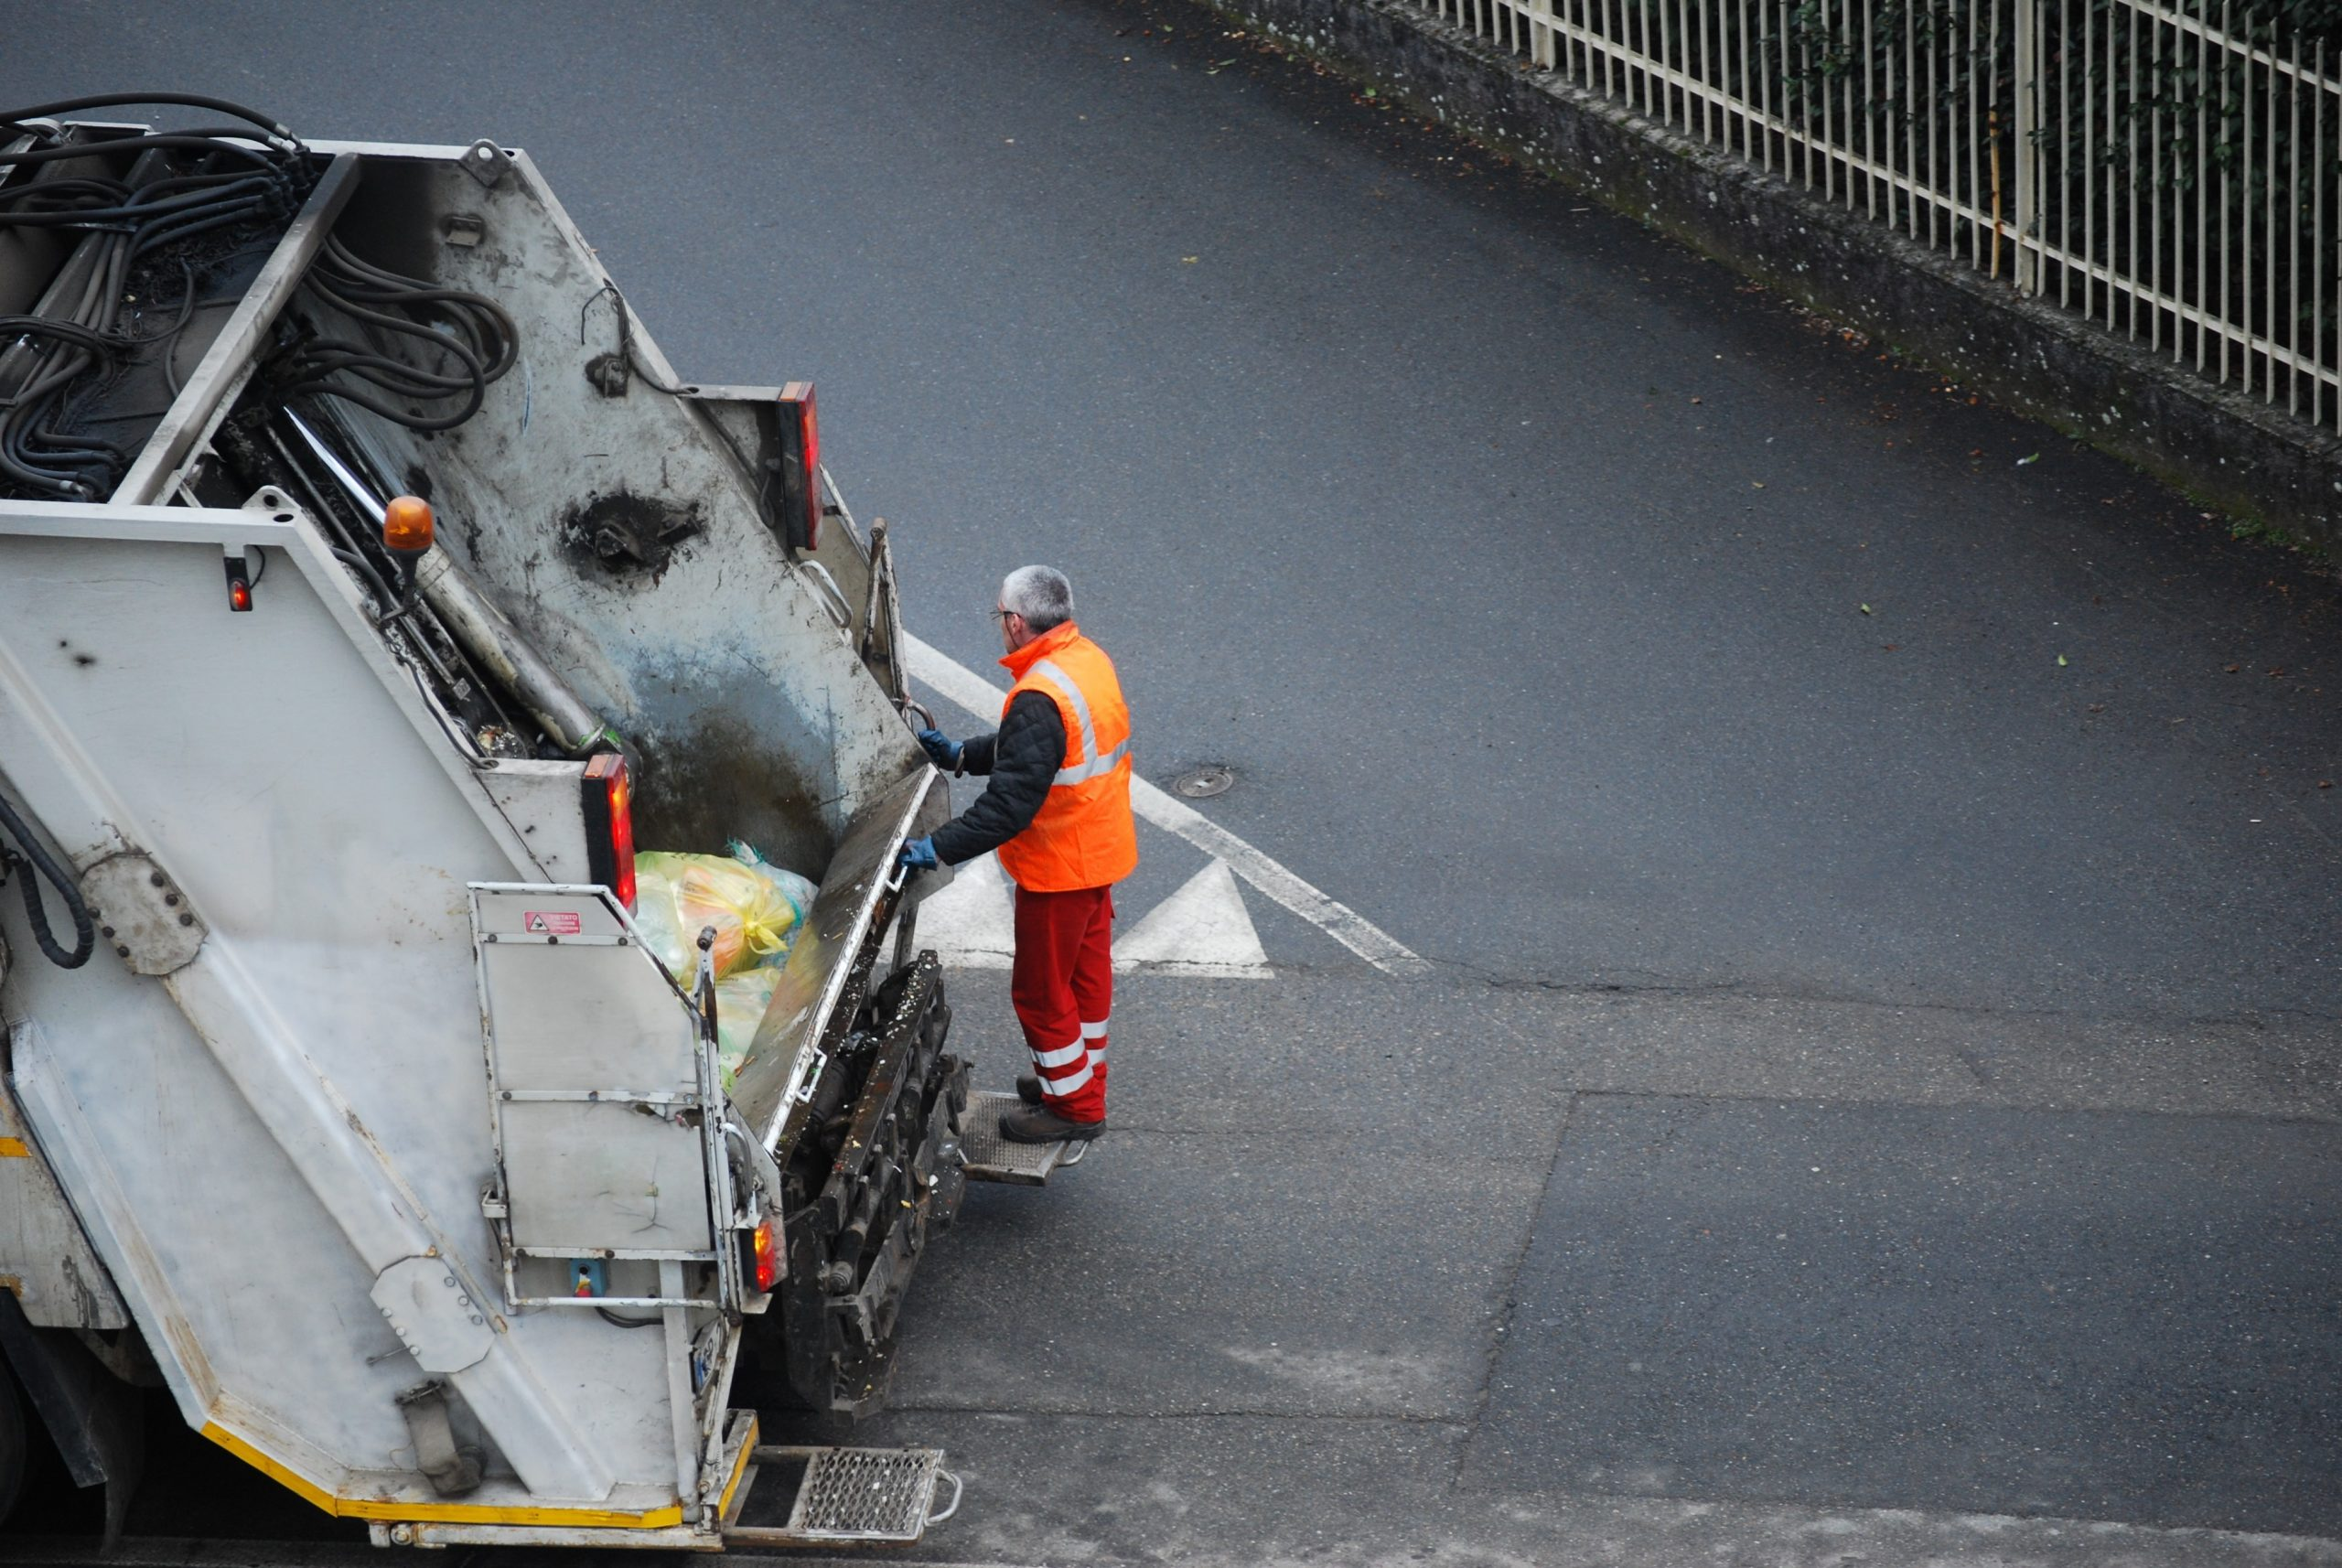 Garbage,Truck,,Worker,Man,Collecting,Plastic,,Industrial,Vehicle